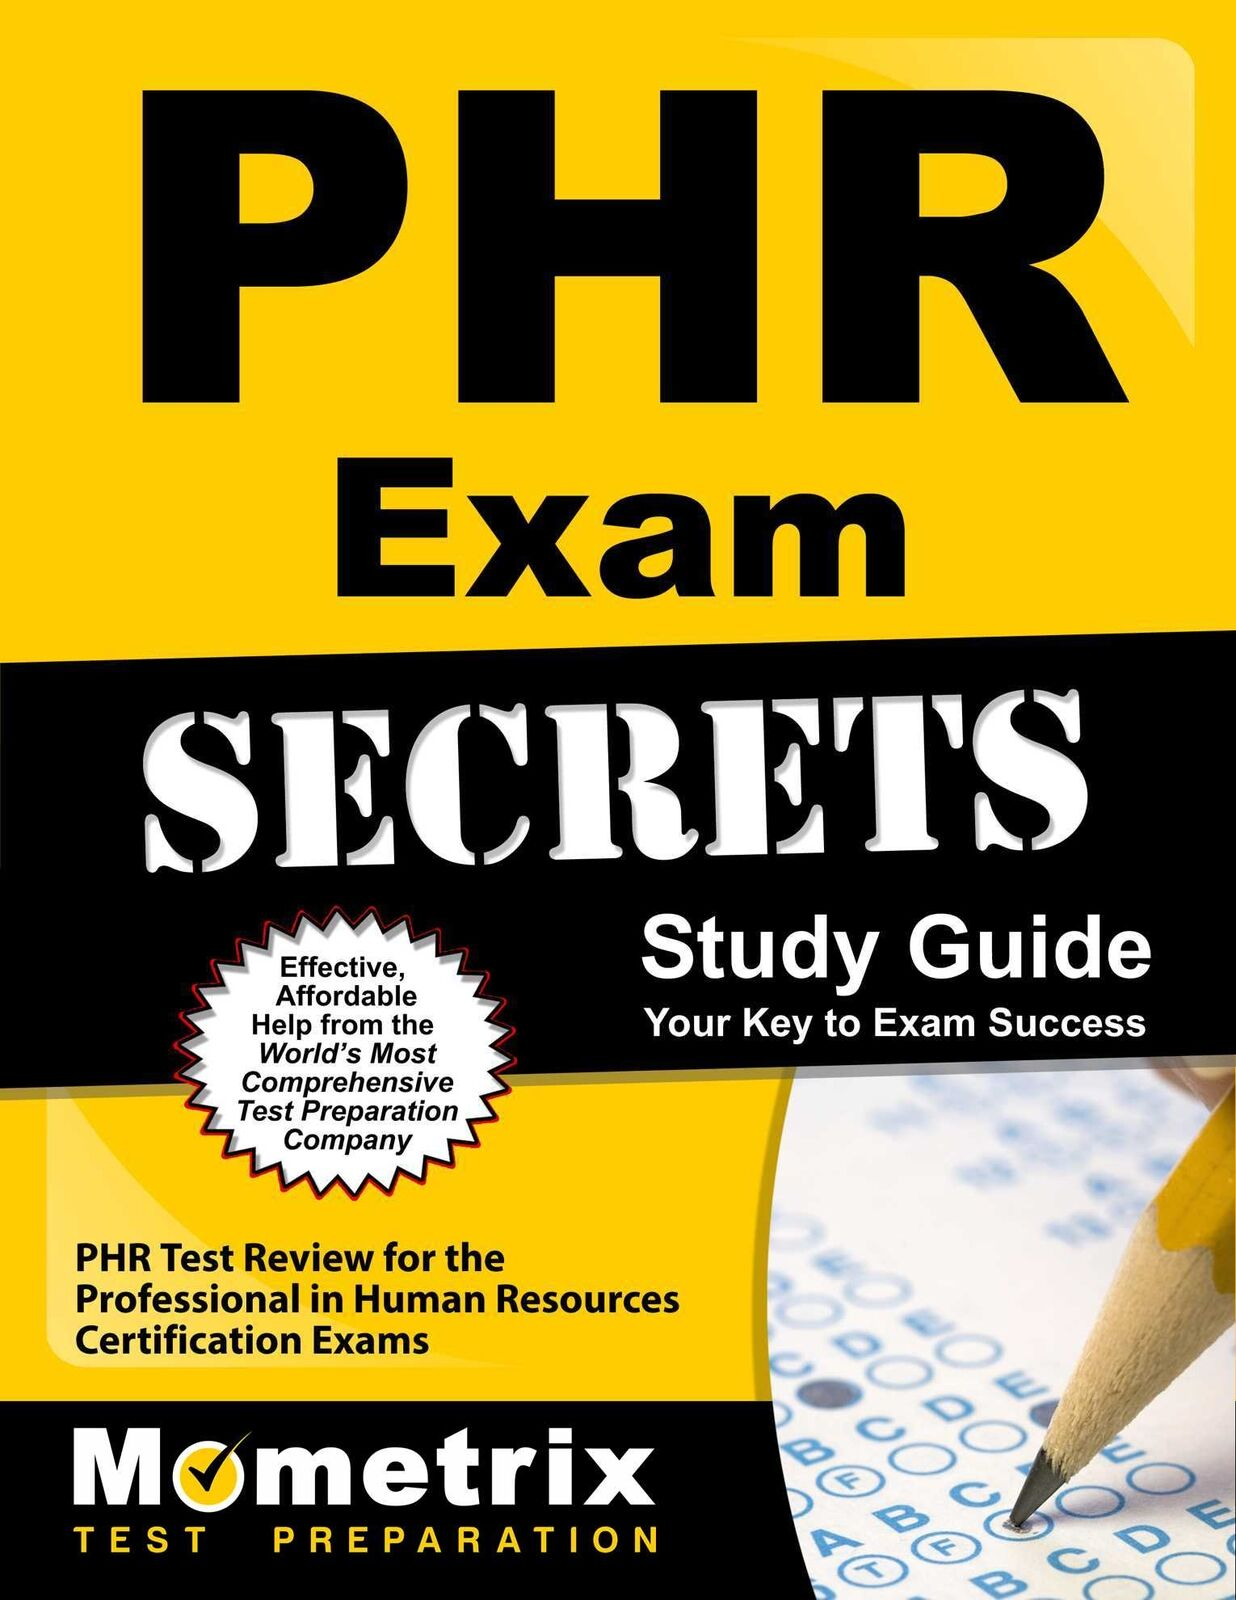 Phr exam secrets study guide phr test review for the picture 1 of 1 xflitez Images